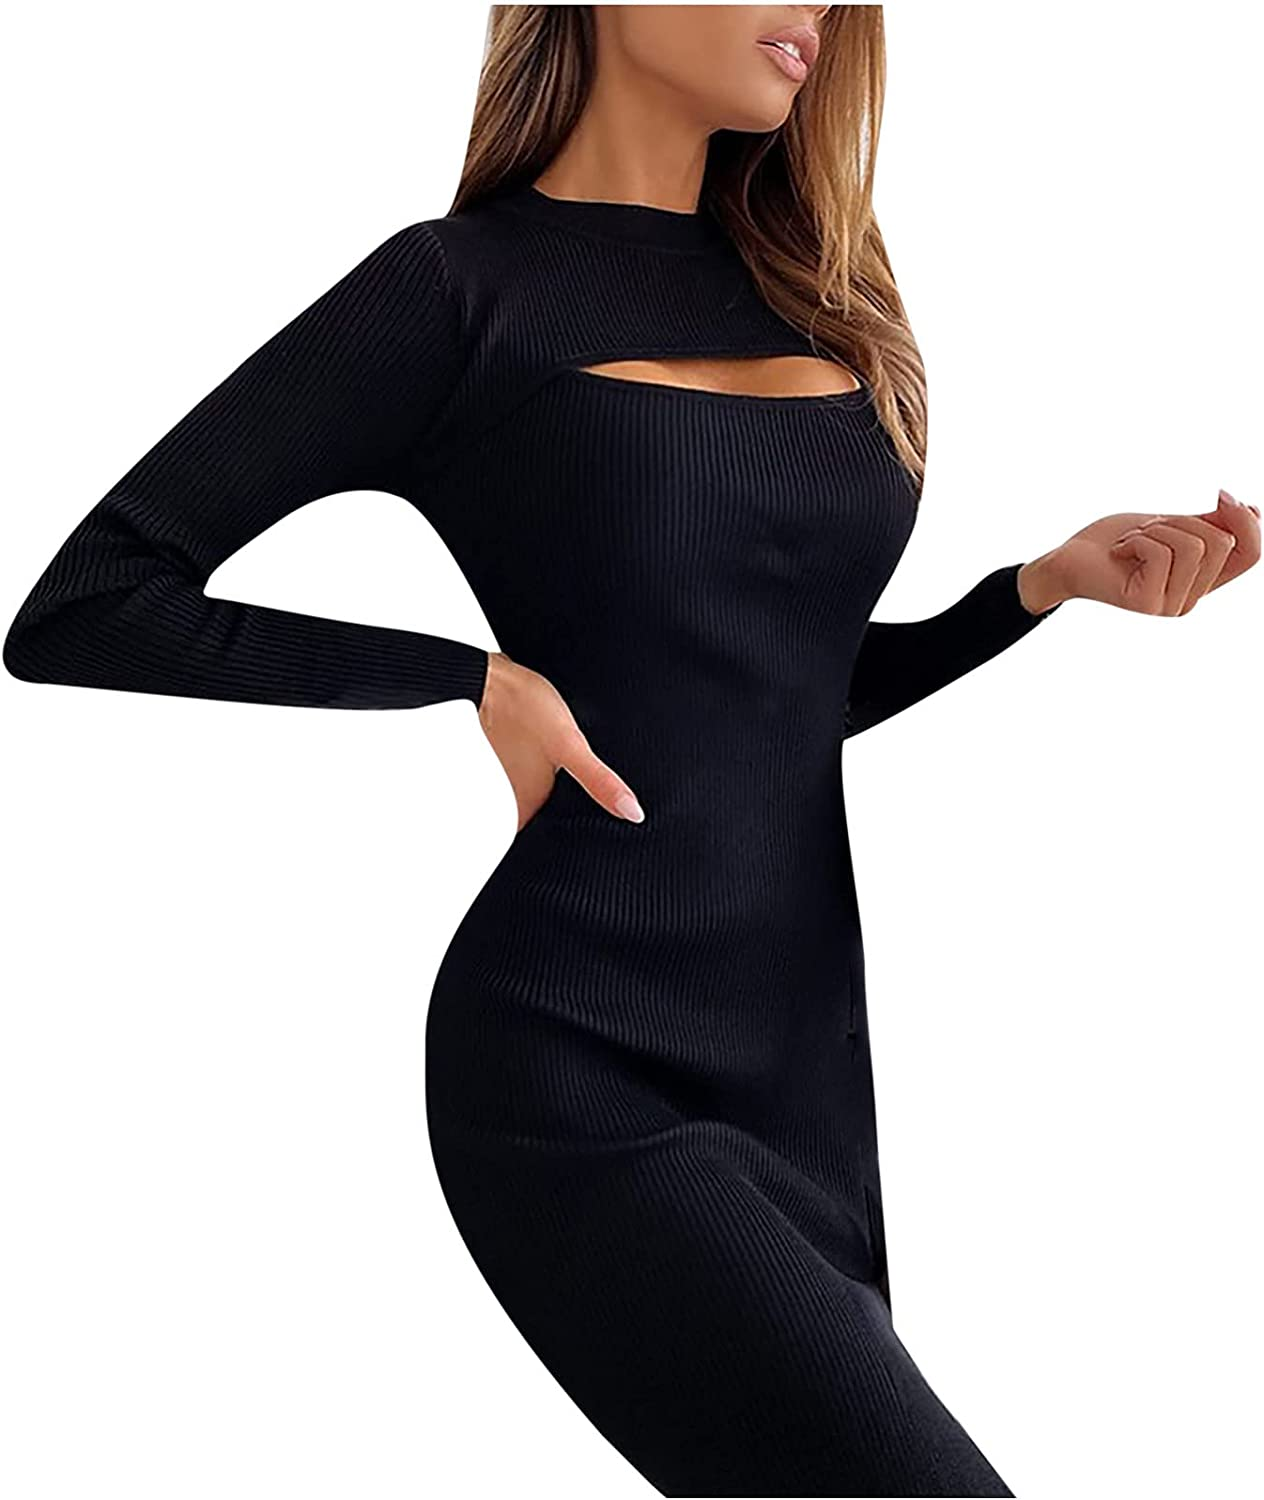 SHILONG Women Summer Sexy Solid Color Long Sleeve Hollow Out Bodycon Party Club Dress Wrap Dress